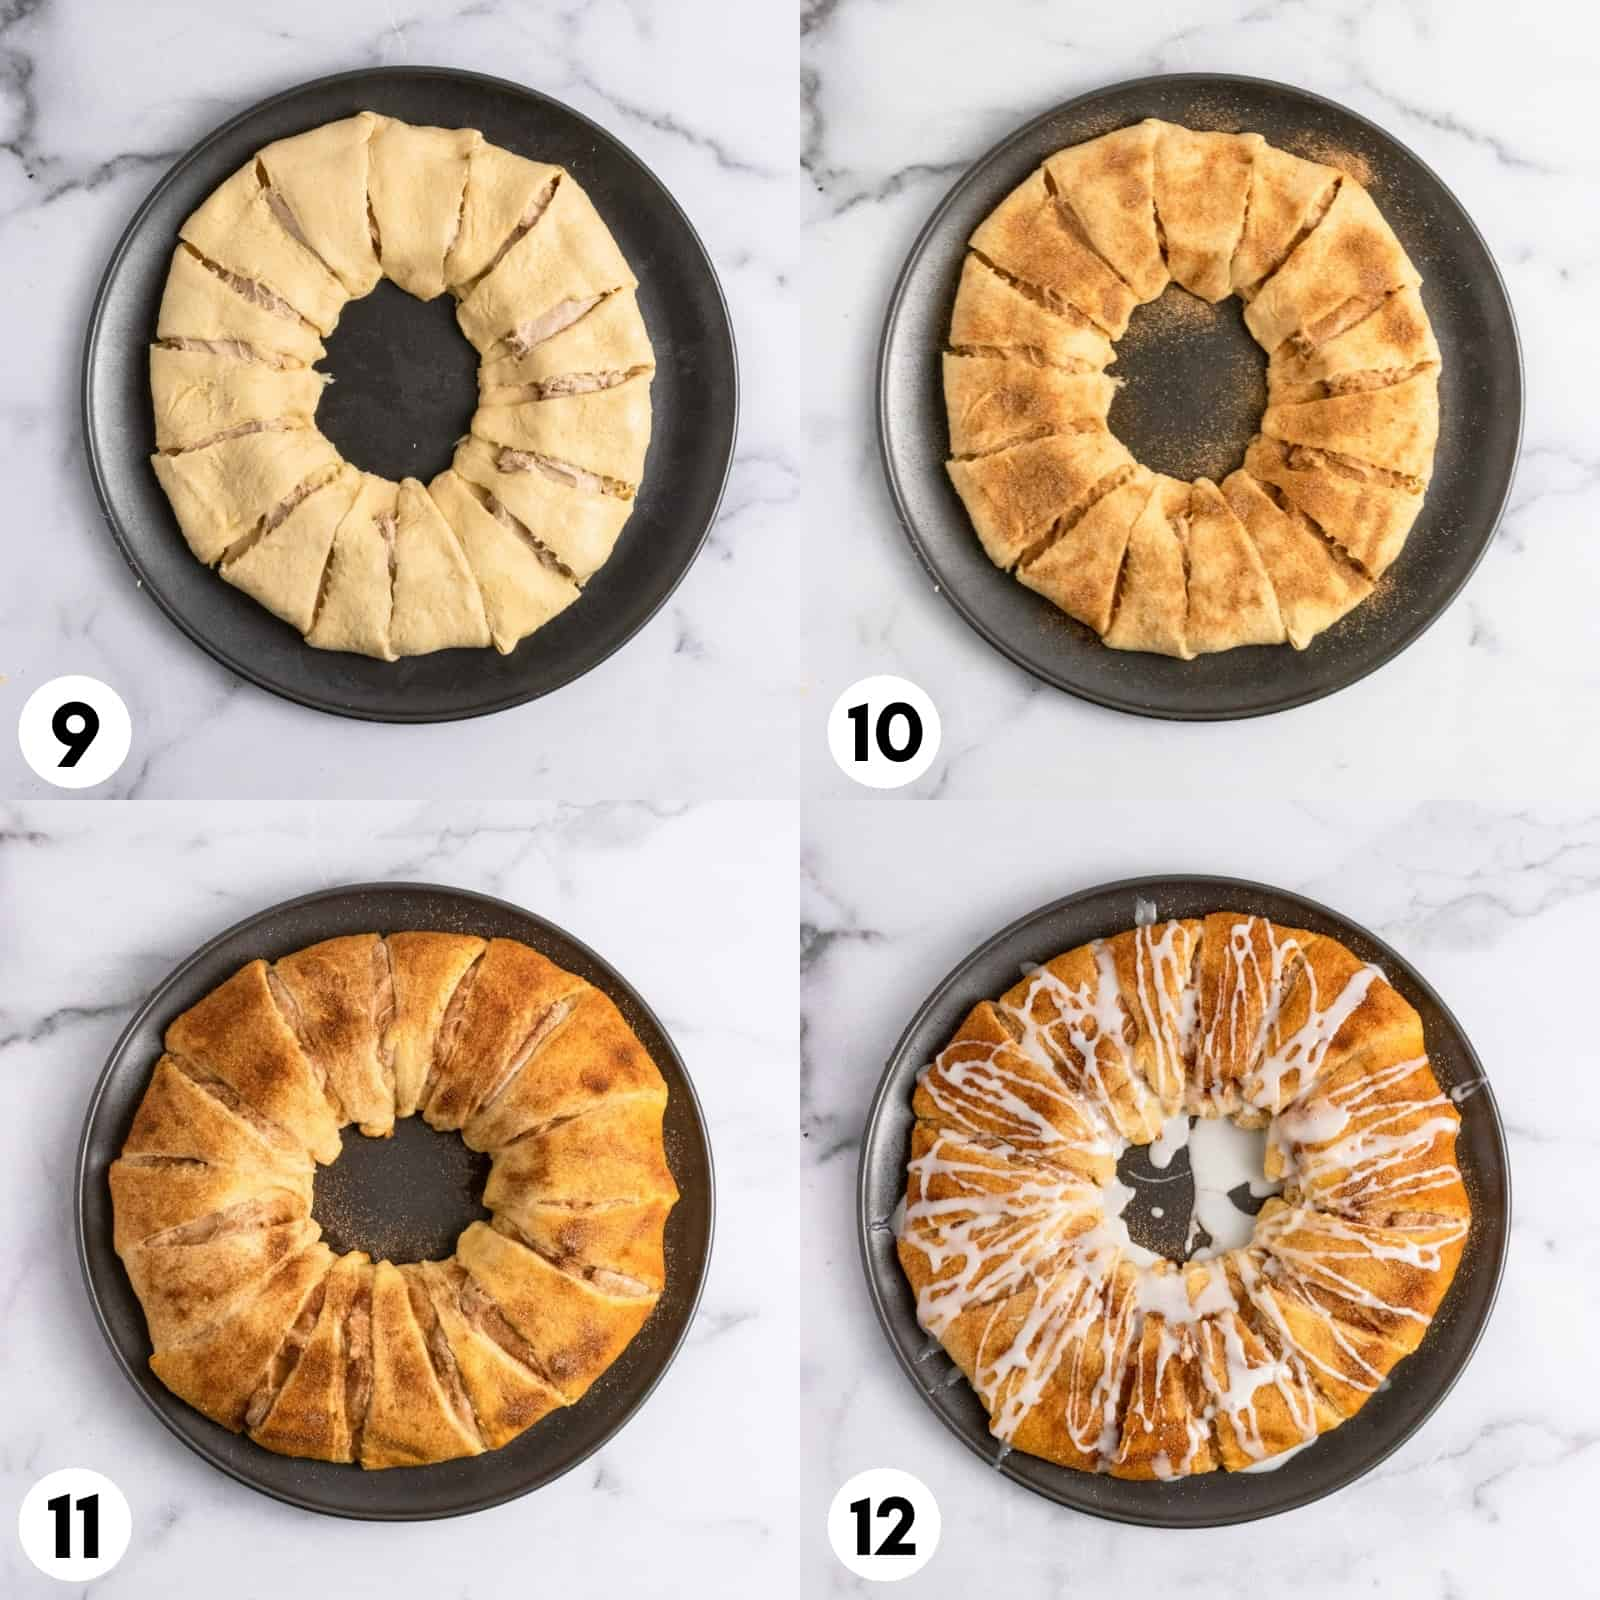 Crescent wreath before and after baked on pan.